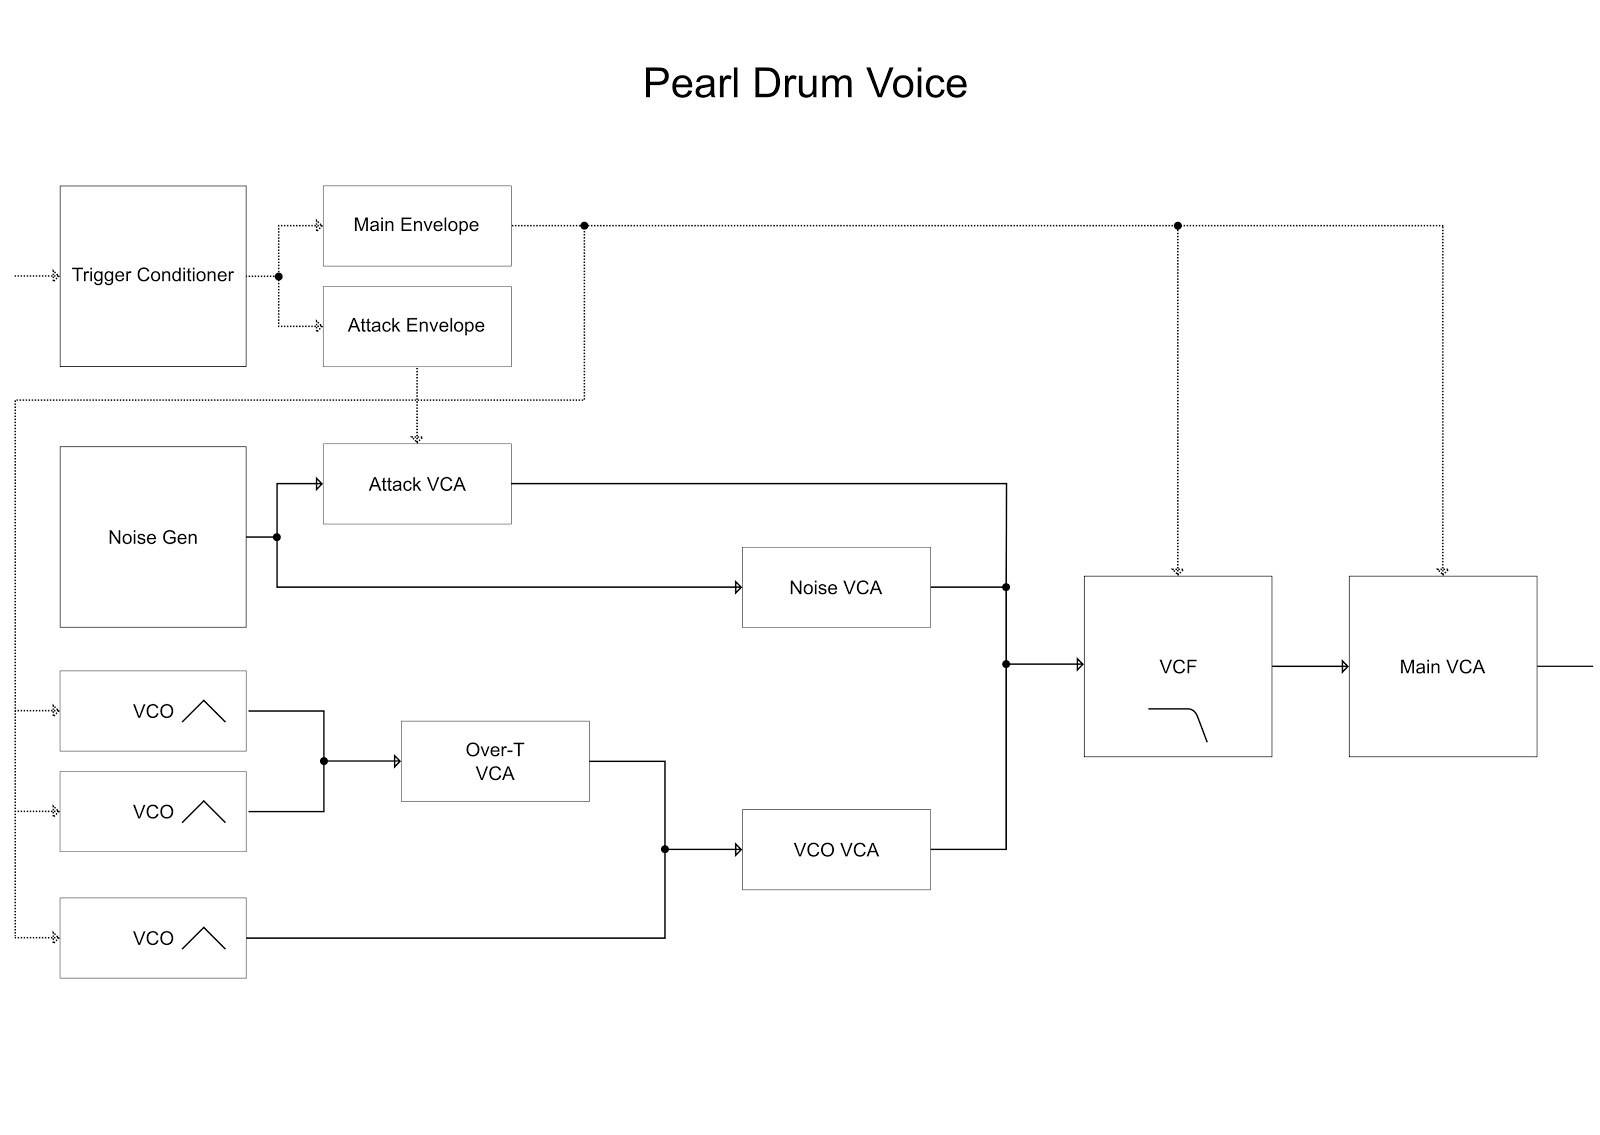 Zen Instruments Pearl Drum X Schematic In Addition Schematics Eagle Files On Here Is A Block Diagram Of One Voice The Full Images And